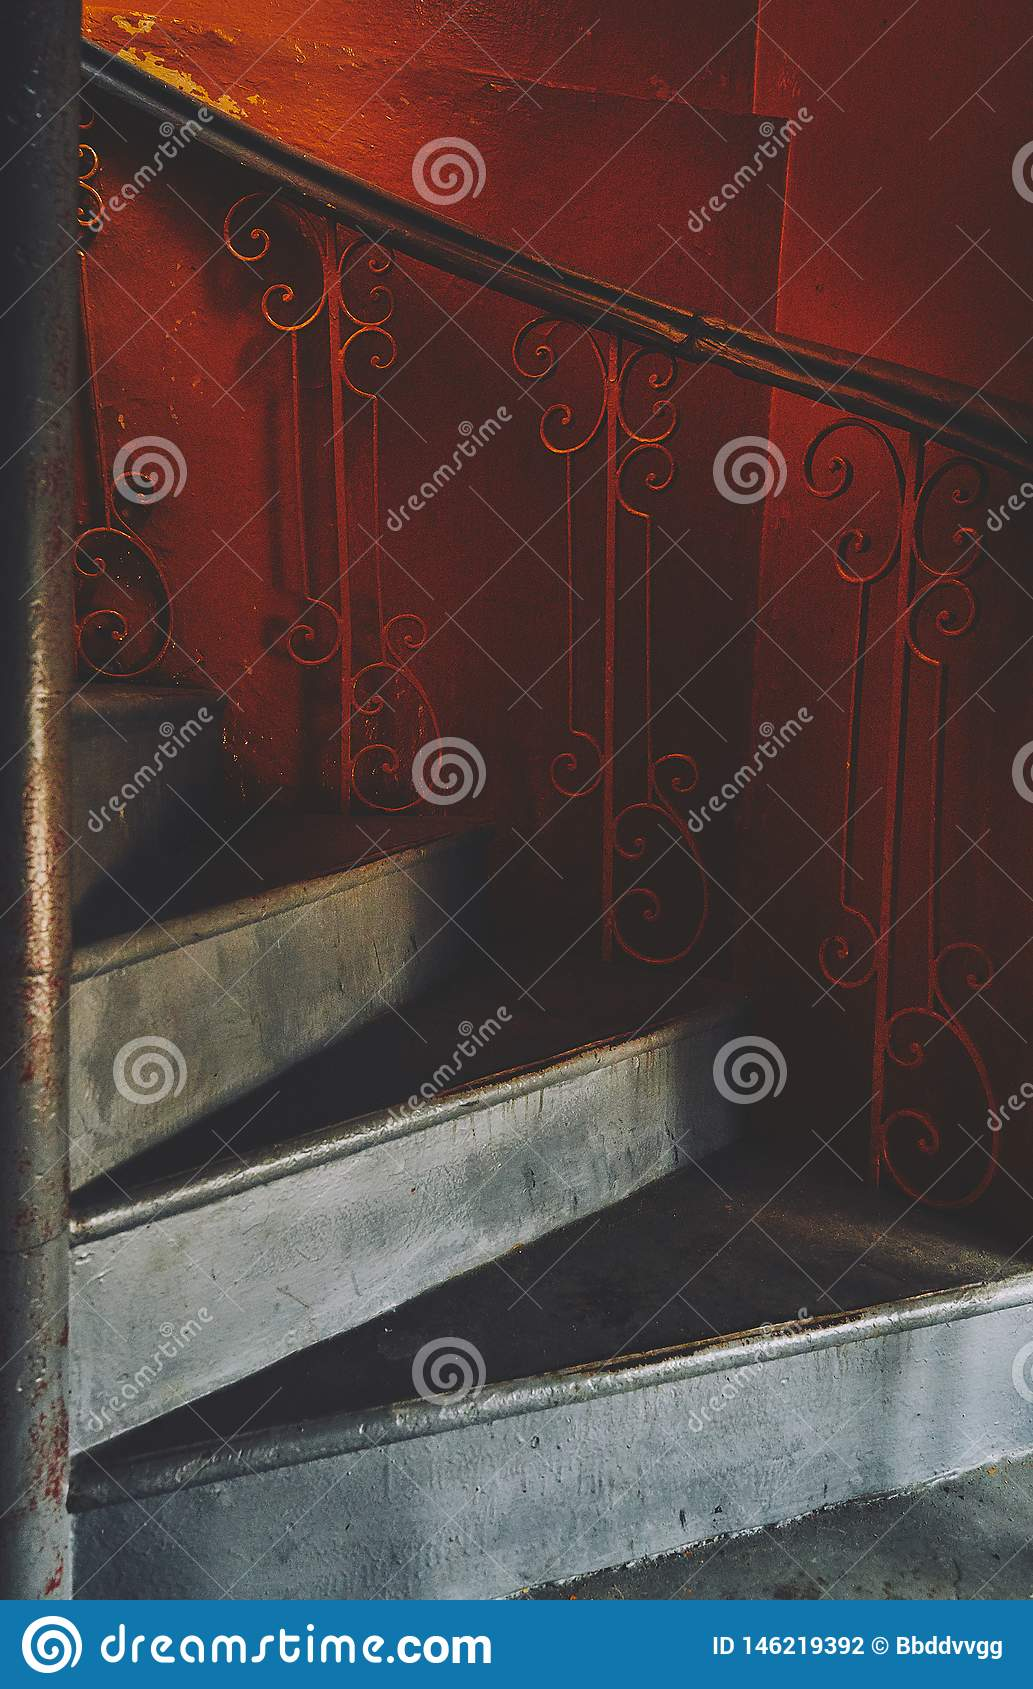 Fragment of a spiral gray staircase in an old orange train, in ocher style, of spirals and descending lines of steps